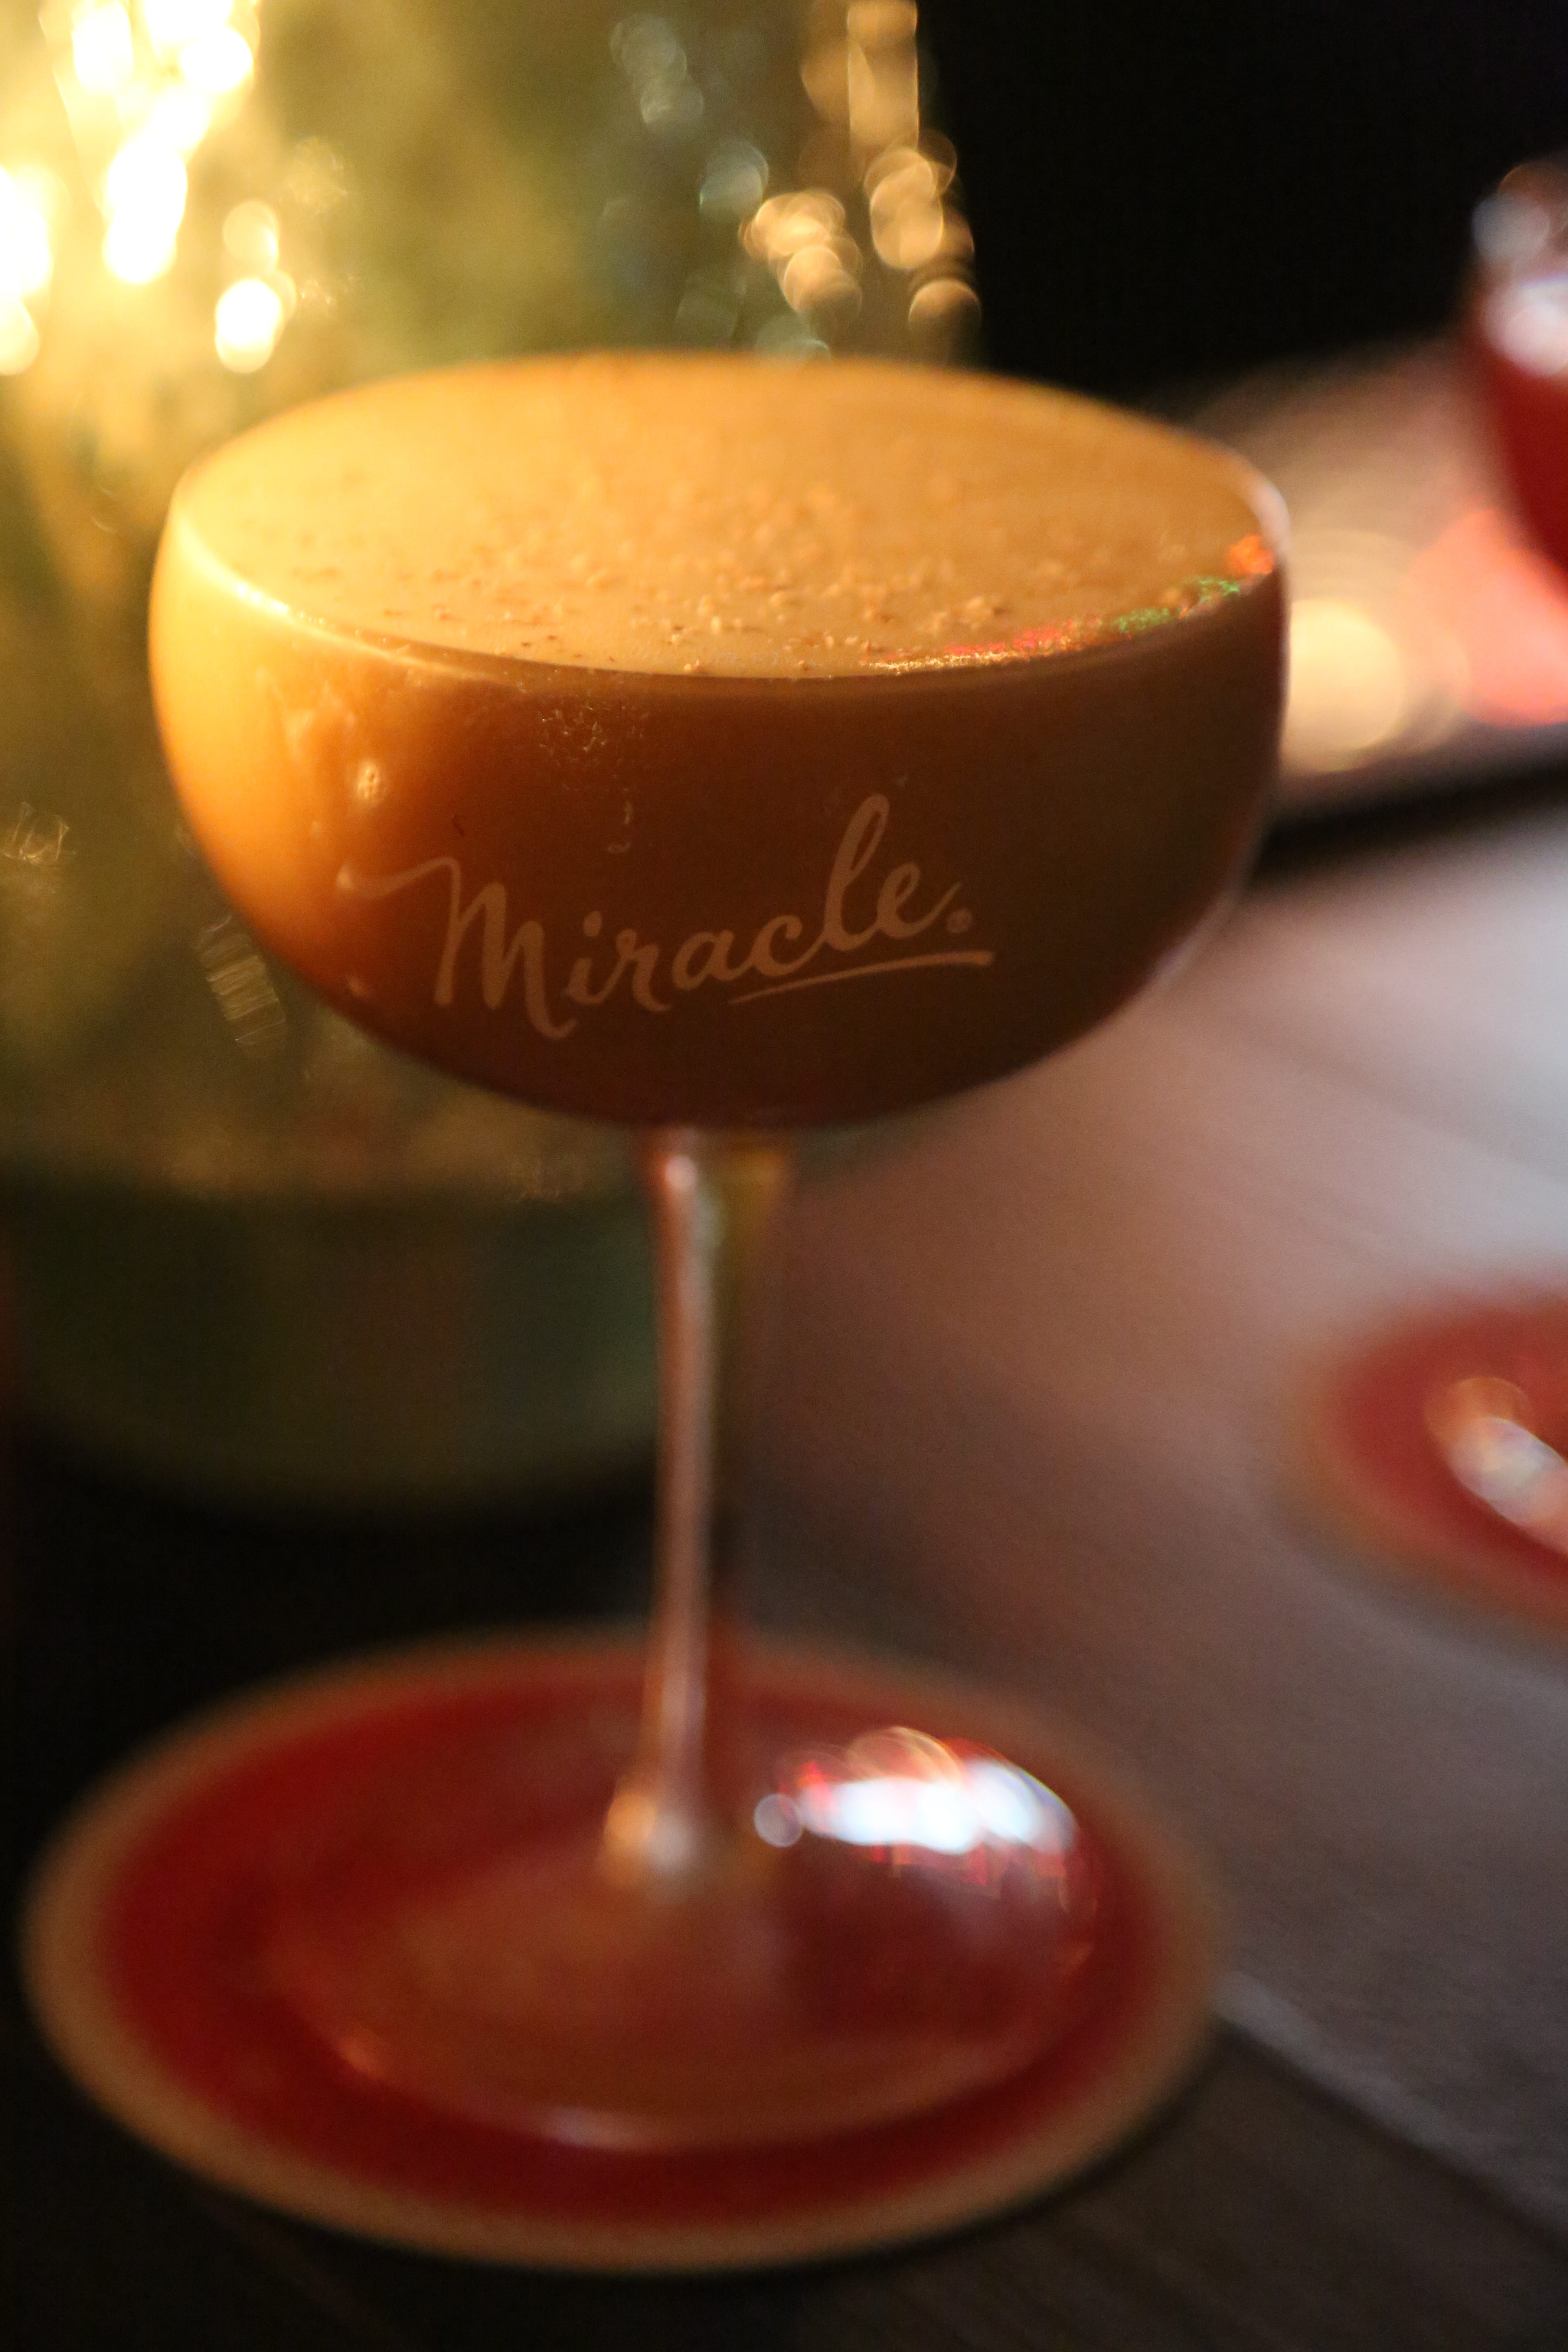 The You'll Shoot Your Rye Out cocktail from Miracle